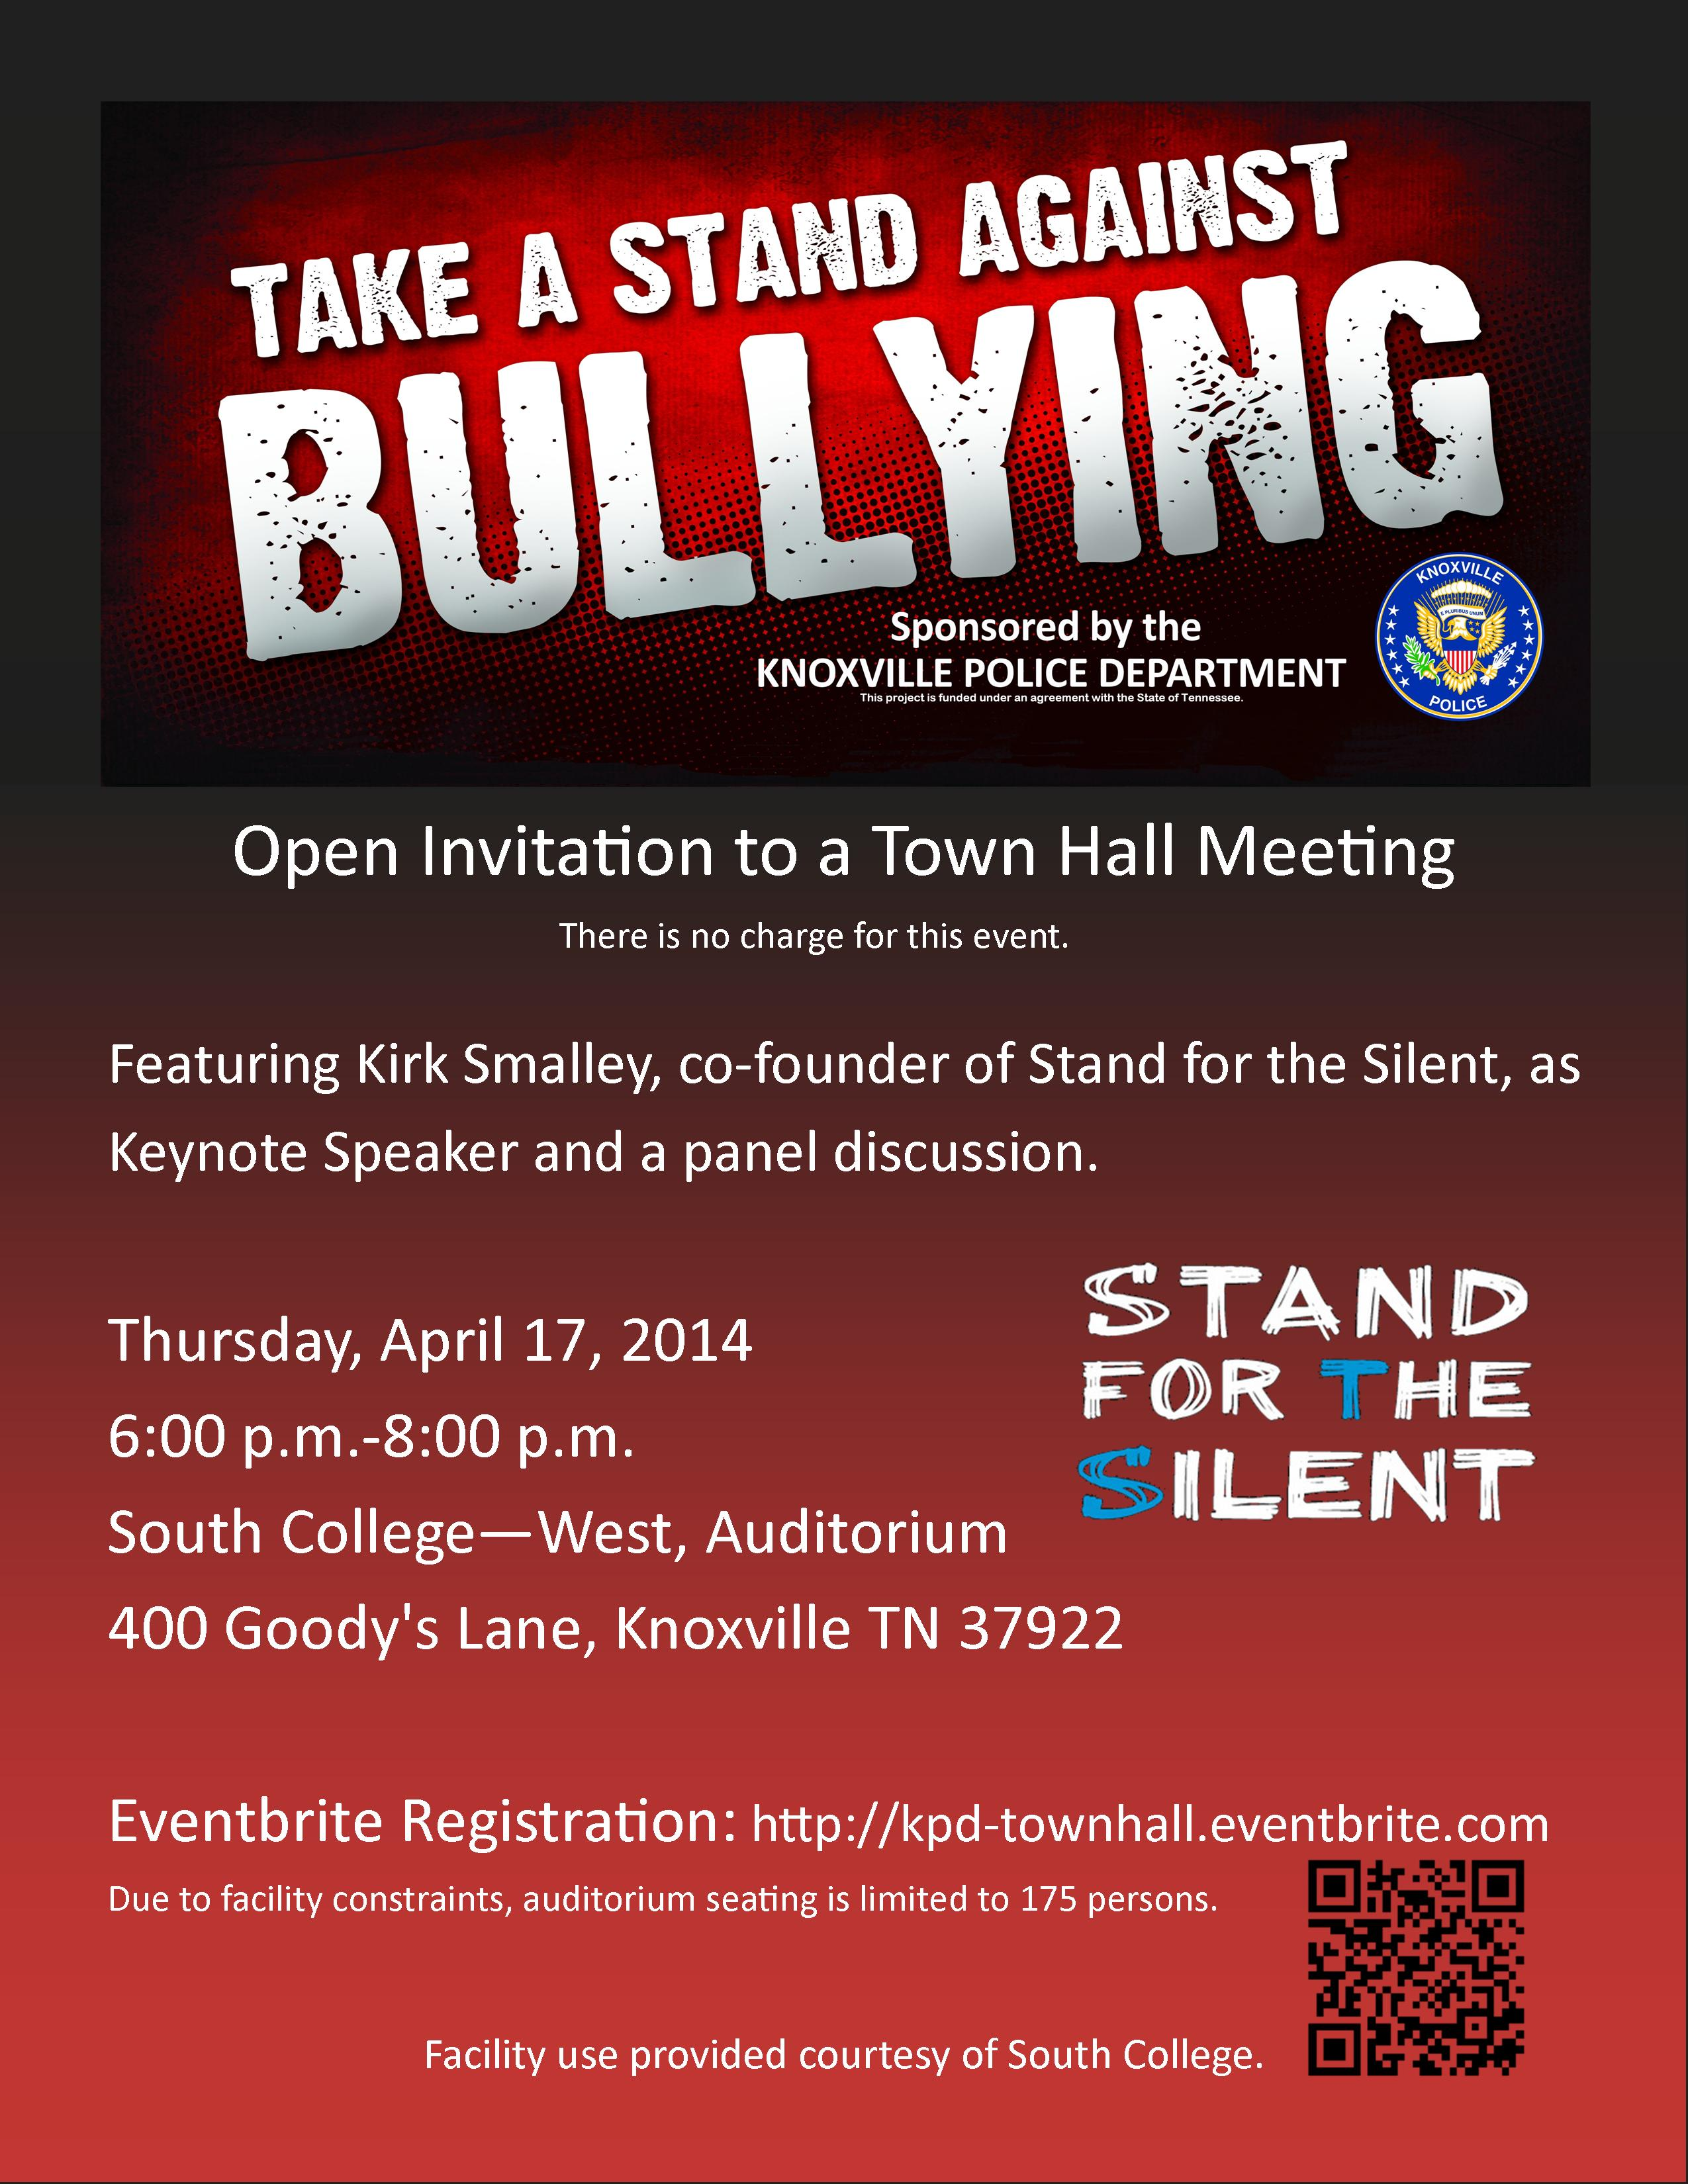 Town Hall Meeting flyer. April 17, 2014. Includes QR code